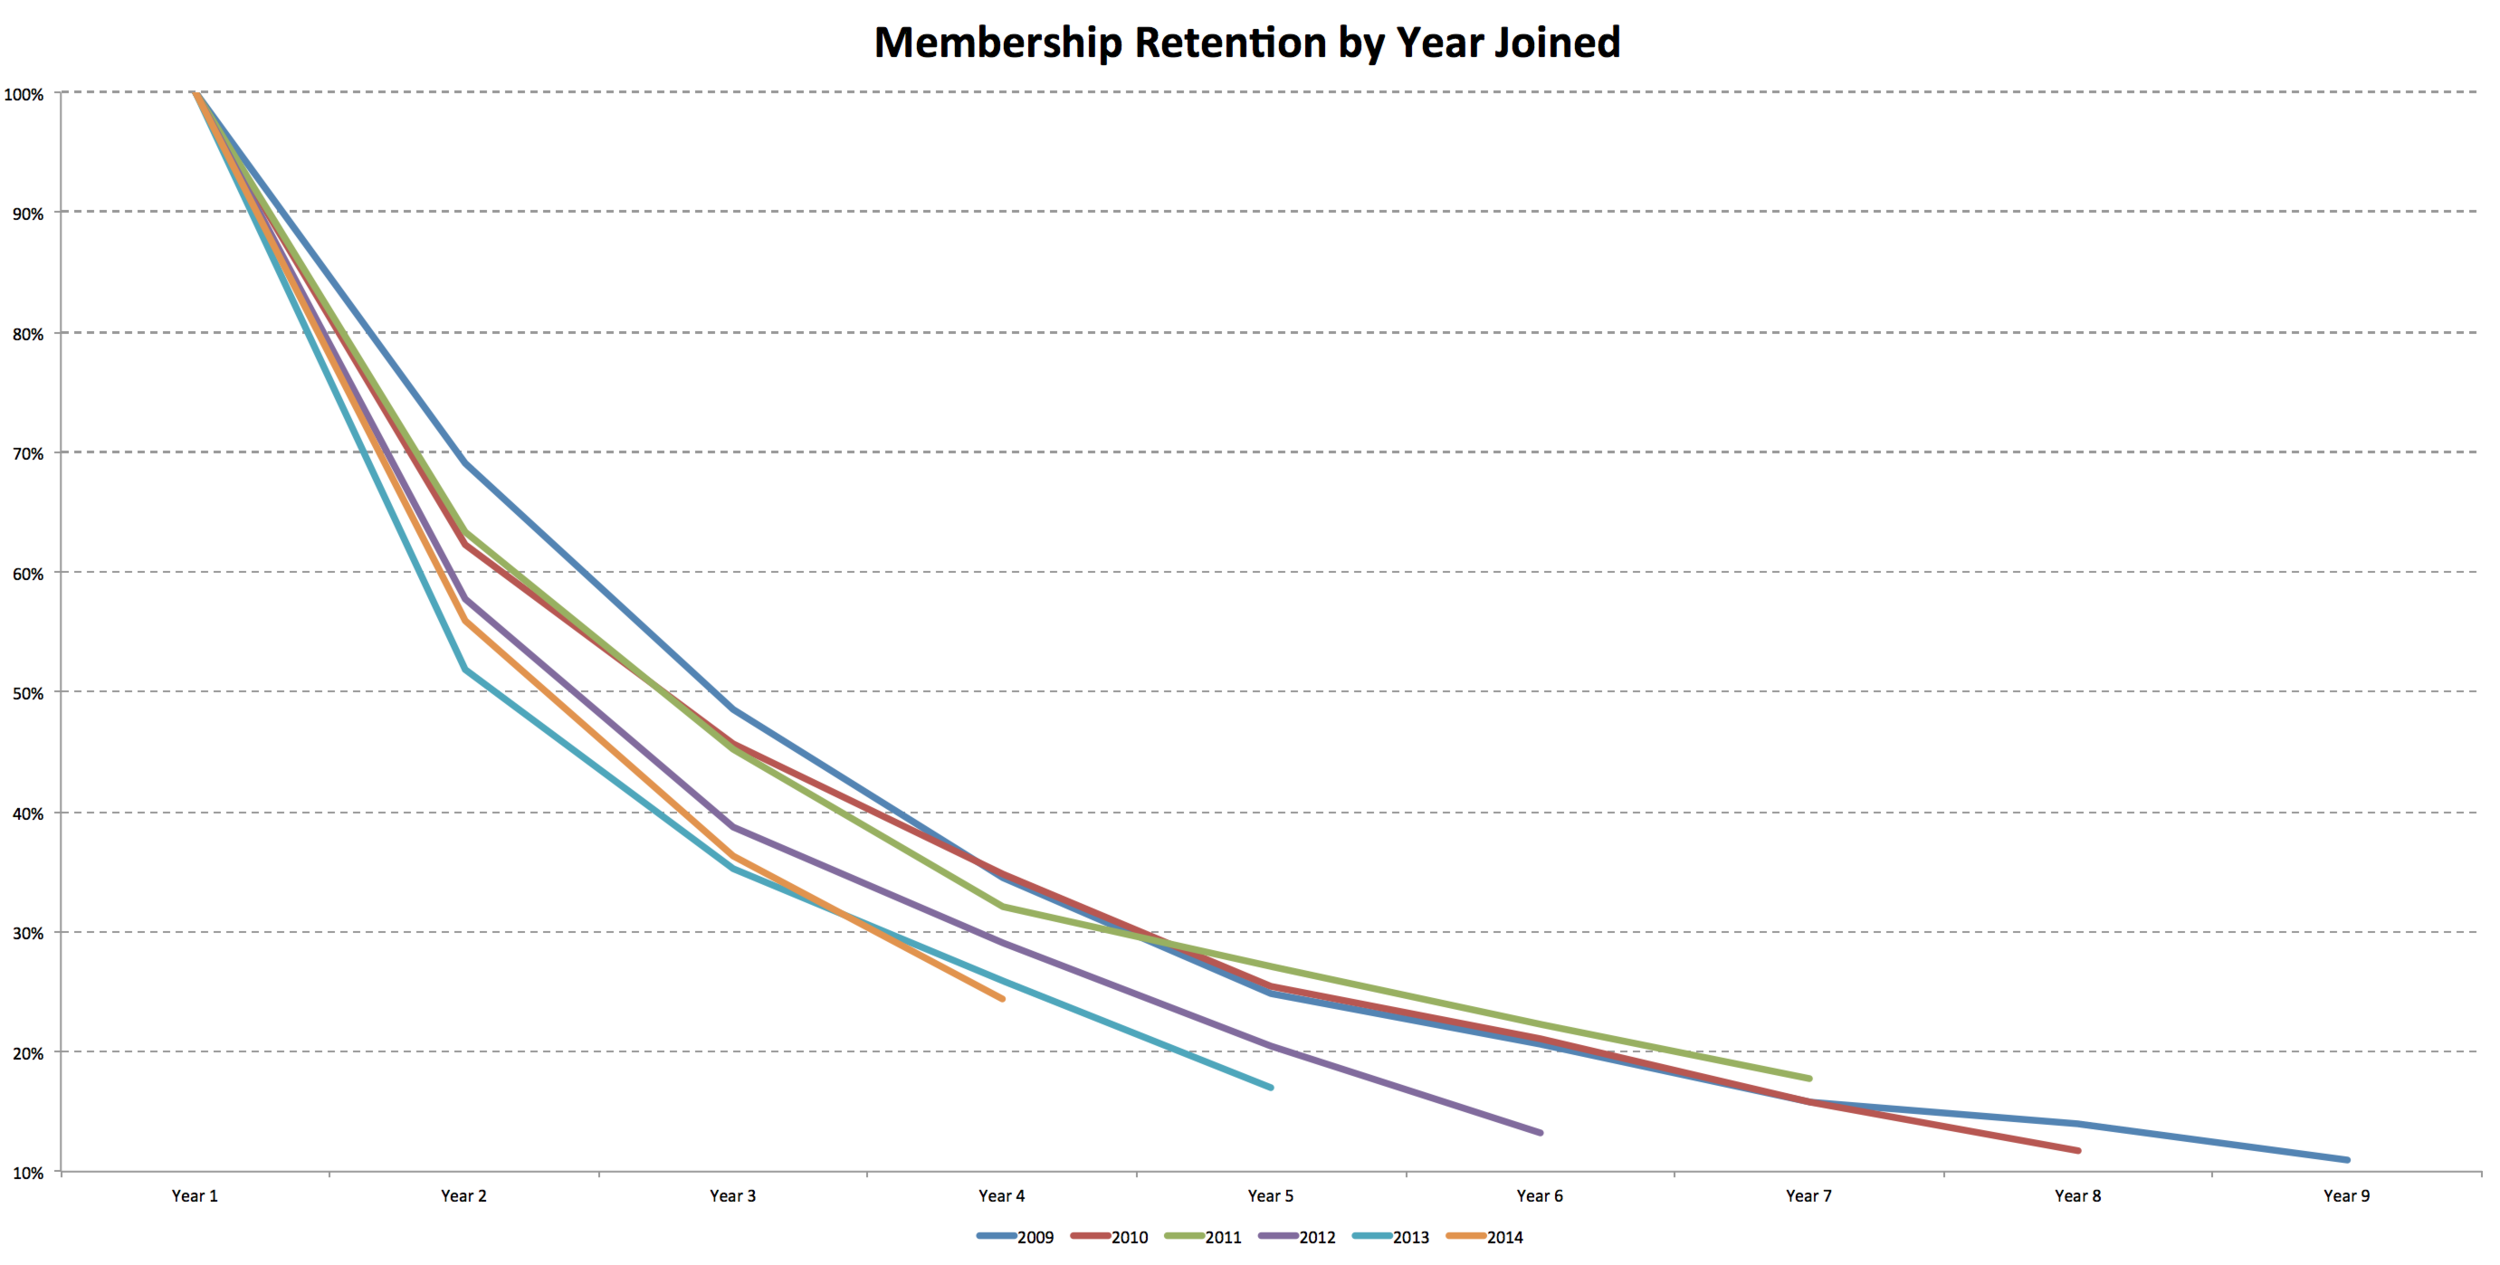 Since 2009 membership retention has generally declined - suggesting racer lifecycles have shorted. More specifically, in 2009 70% of racers who joined the club raced more than two seasons but by 2014 this figure declined to just 56%. The 'Class of 2013' is also showing the lowest portion of racers still active in the club after five years at just 17%.